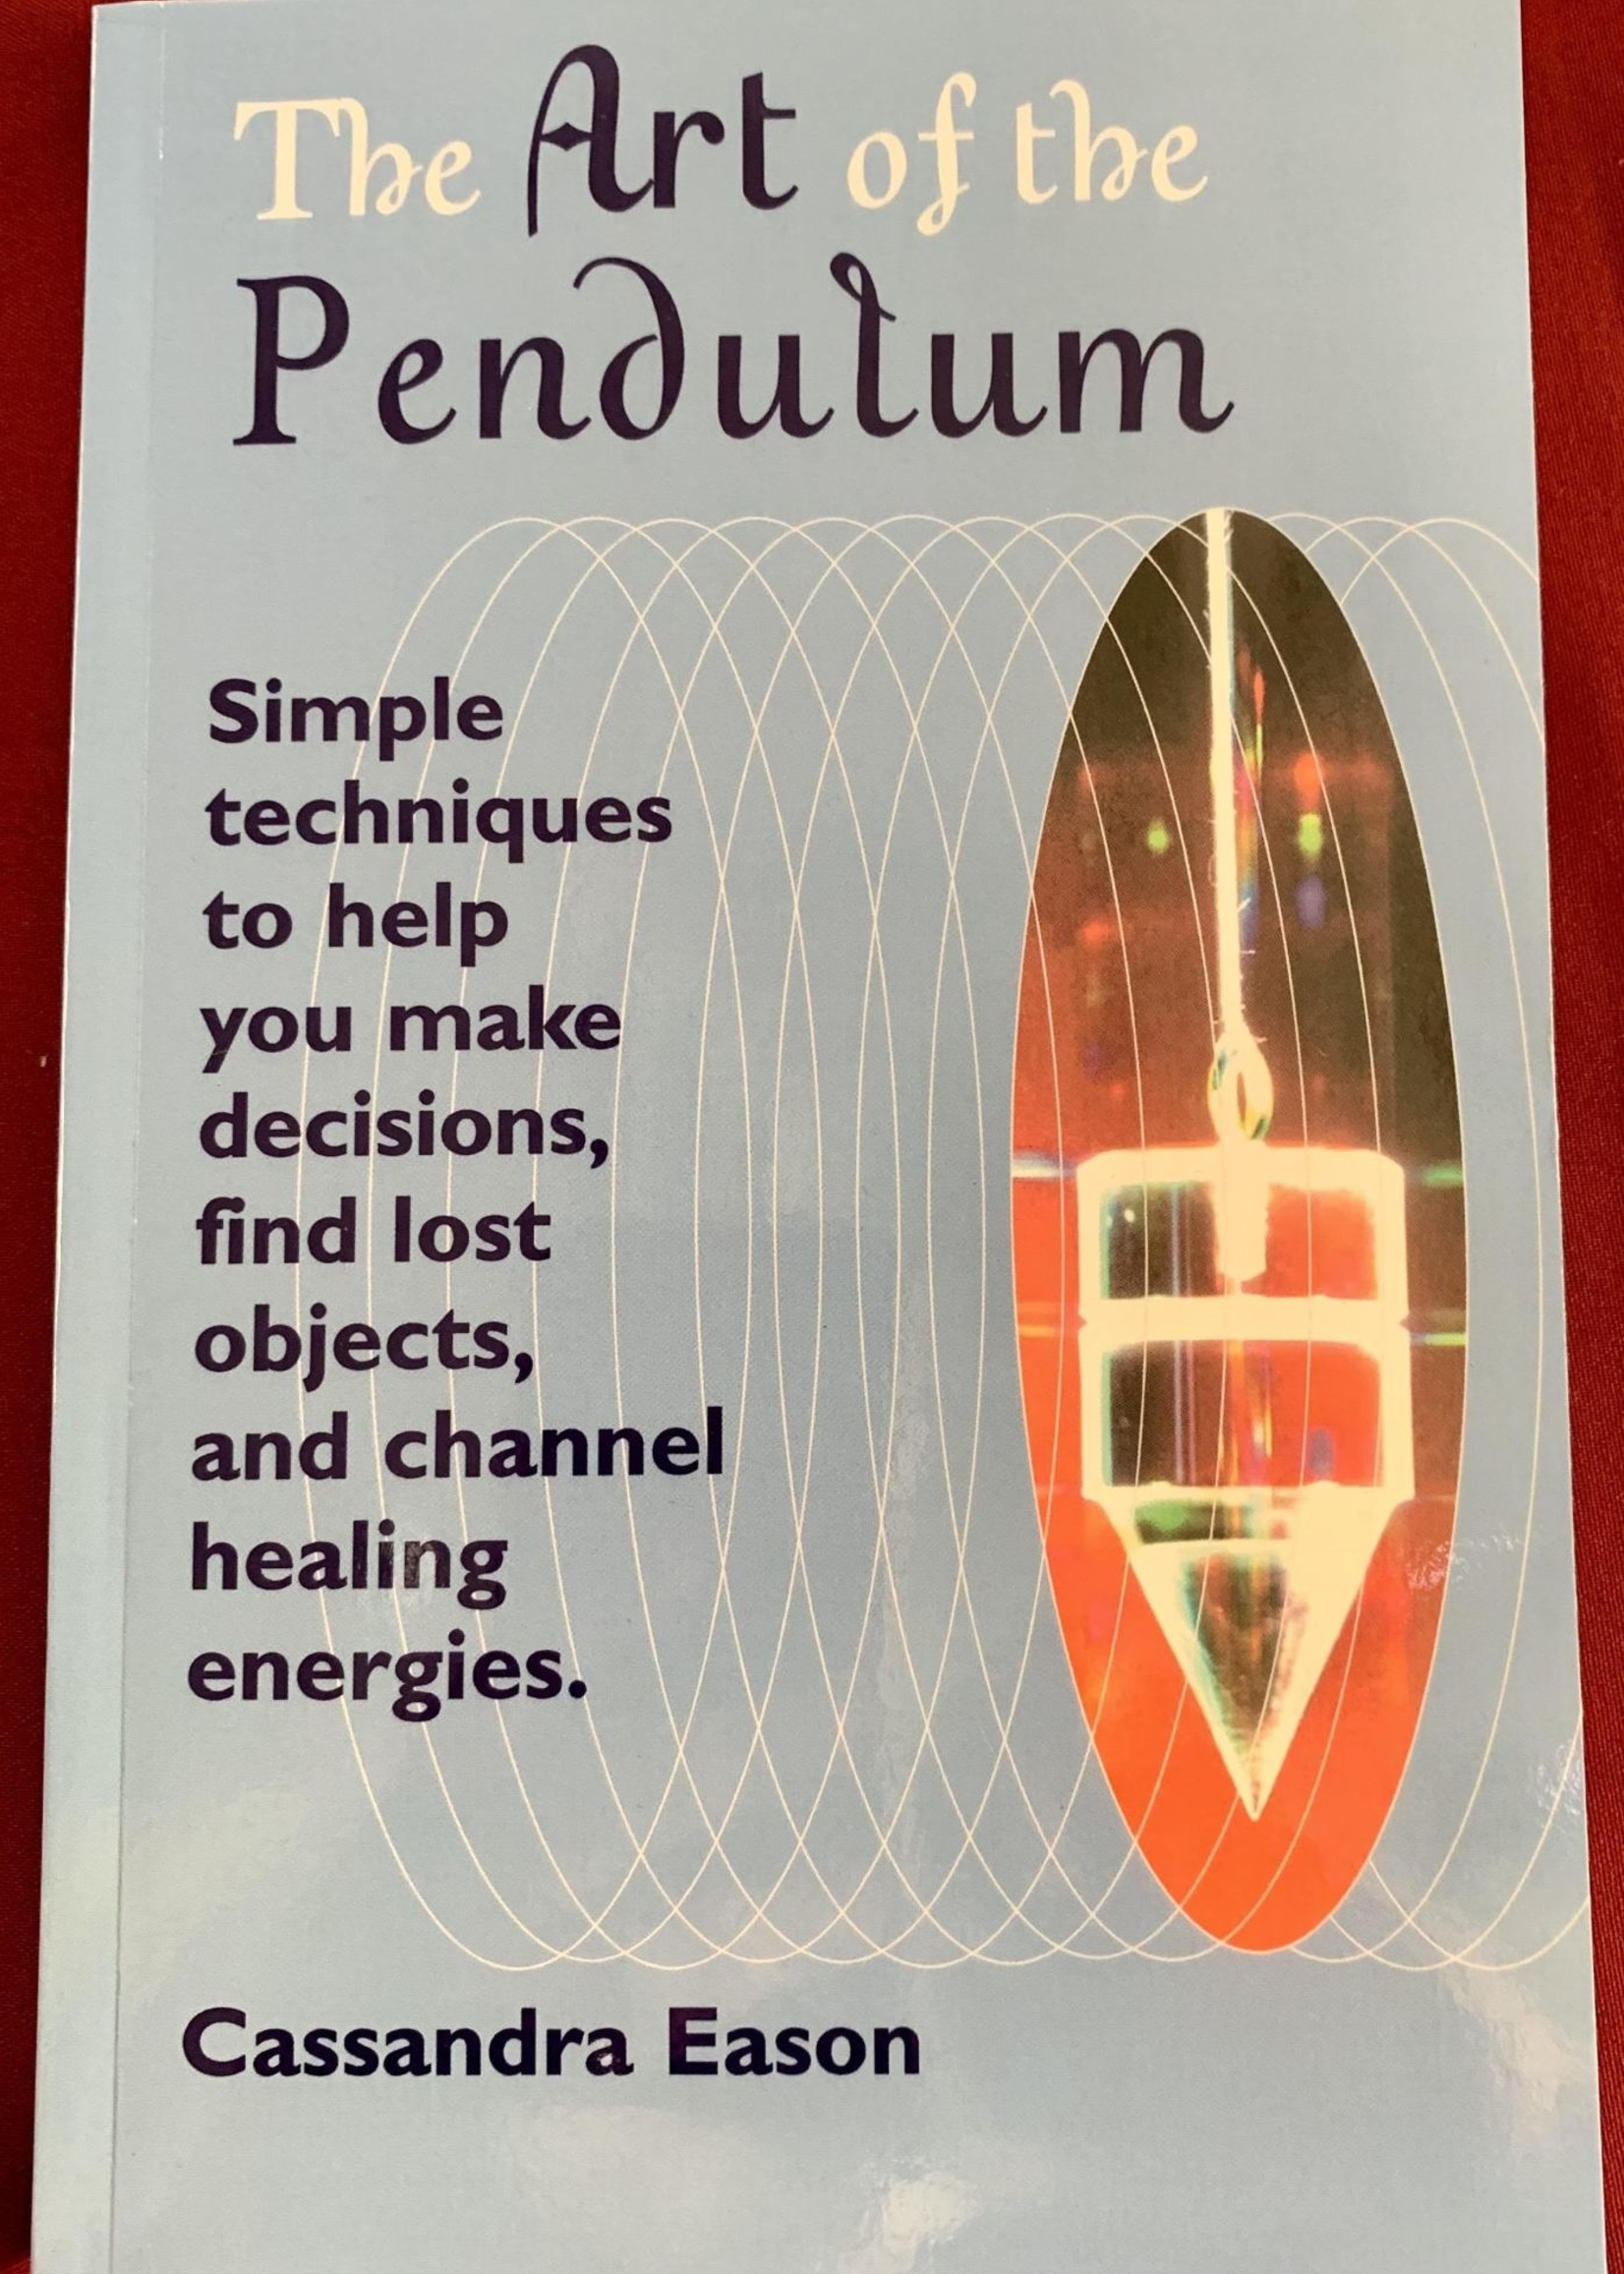 The Art of the Pendulum Simple techniques to help you make decisions, find lost objects, and channel healing energies. -Cassandra Eason